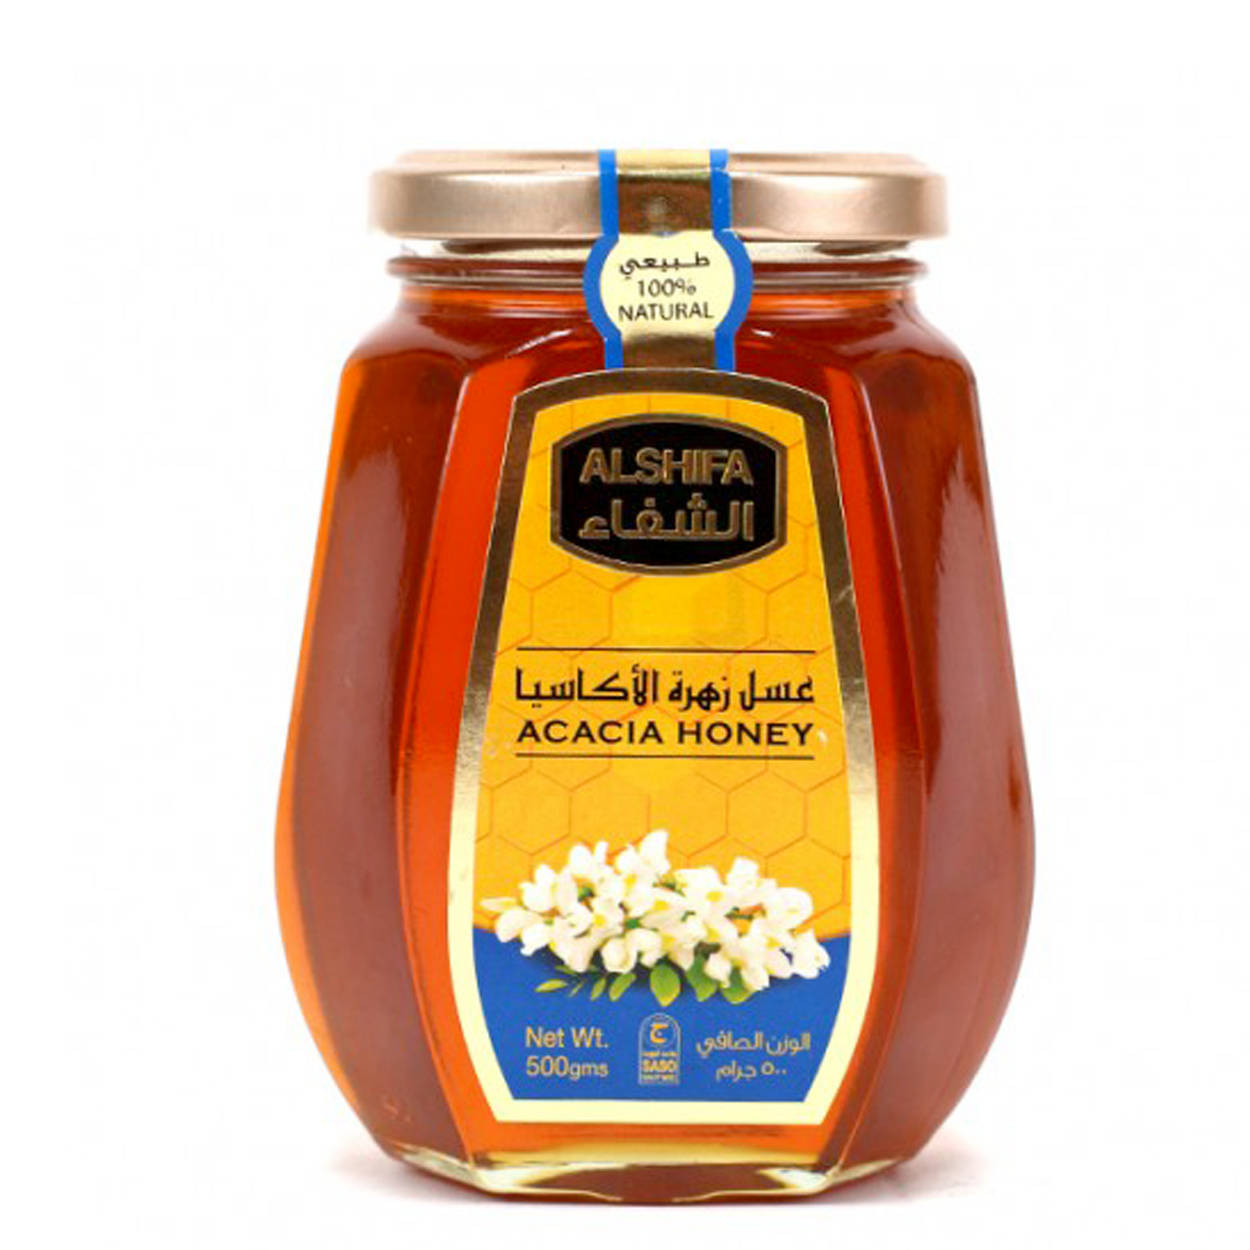 Alshifa Acacia Honey Jar 500gm